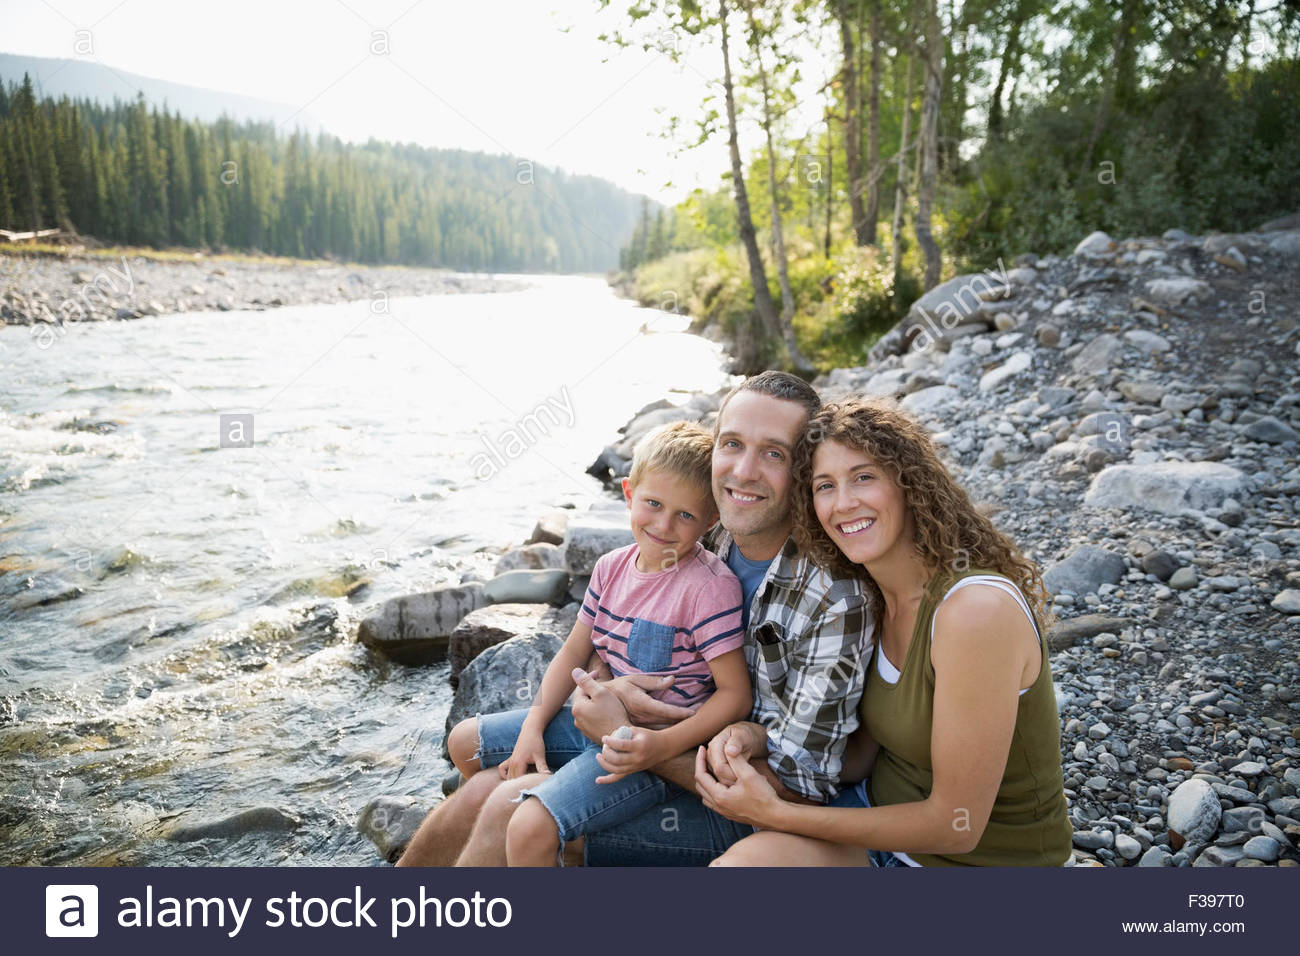 Portrait smiling family at craggy riverside - Stock Image